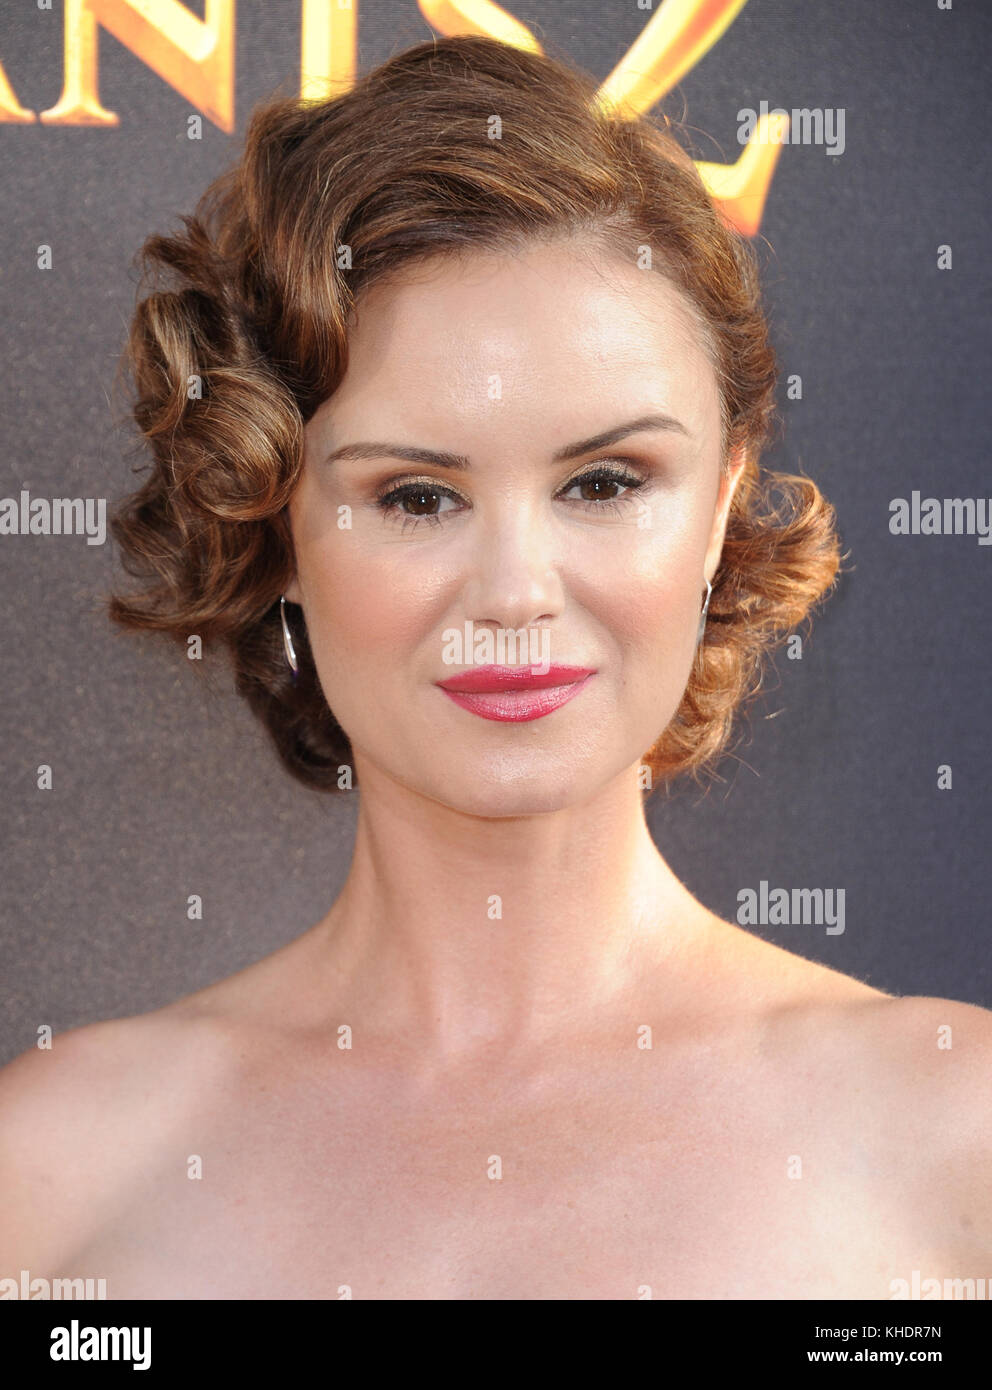 Keegan connor tracy congratulate, excellent